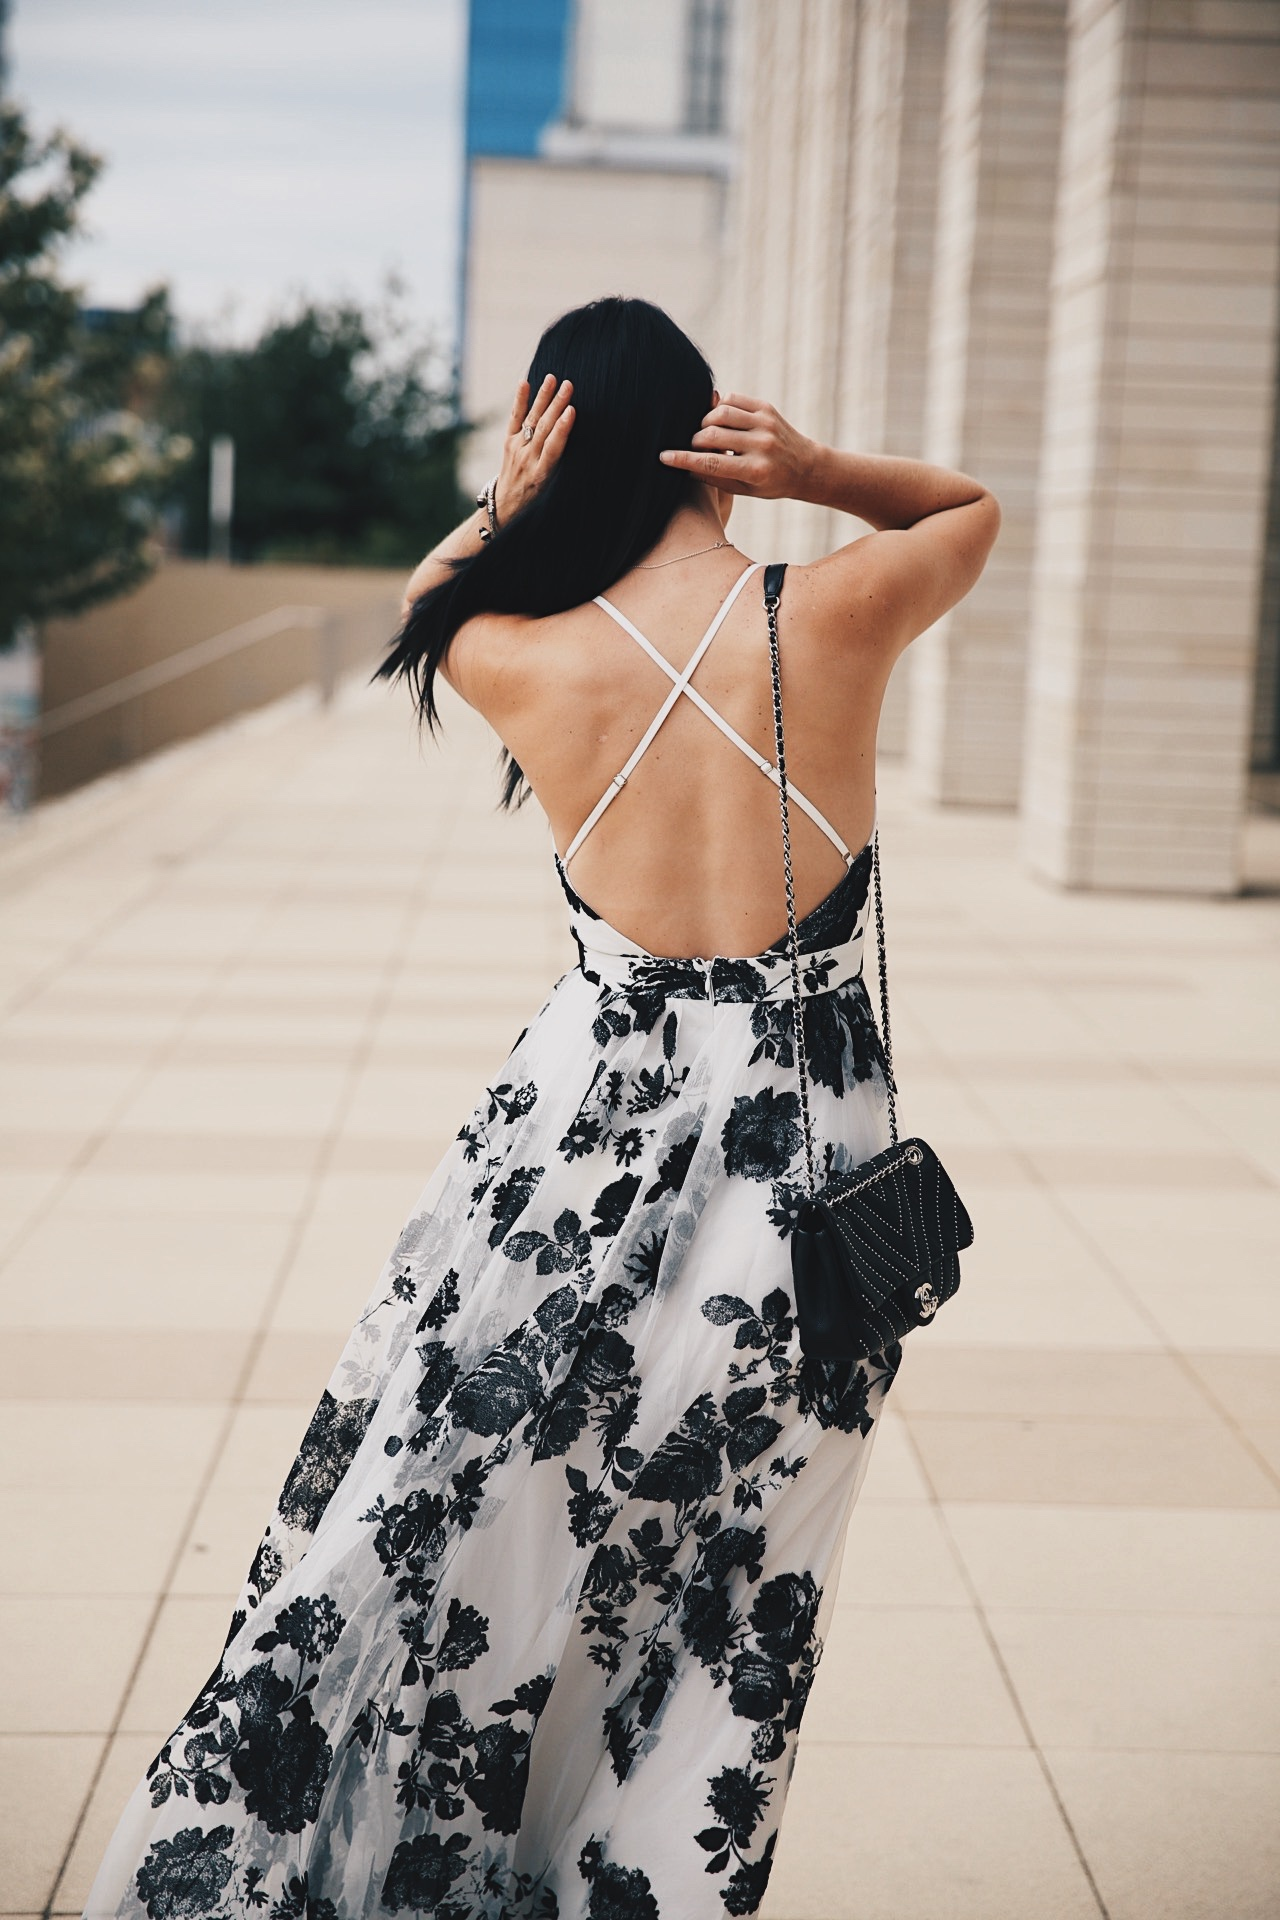 DTKAustin shares the most affordable black and white floral print maxi dress from Akira. Under $100 with a stunning criss-cross back it is perfect for date night. | how to wear a maxi dress | how to style a maxi dress | maxi dress style tips | summer fashion tips | summer outfit ideas | summer style tips | what to wear for summer | warm weather fashion | fashion for summer | style tips for summer | outfit ideas for summer || Dressed to Kill